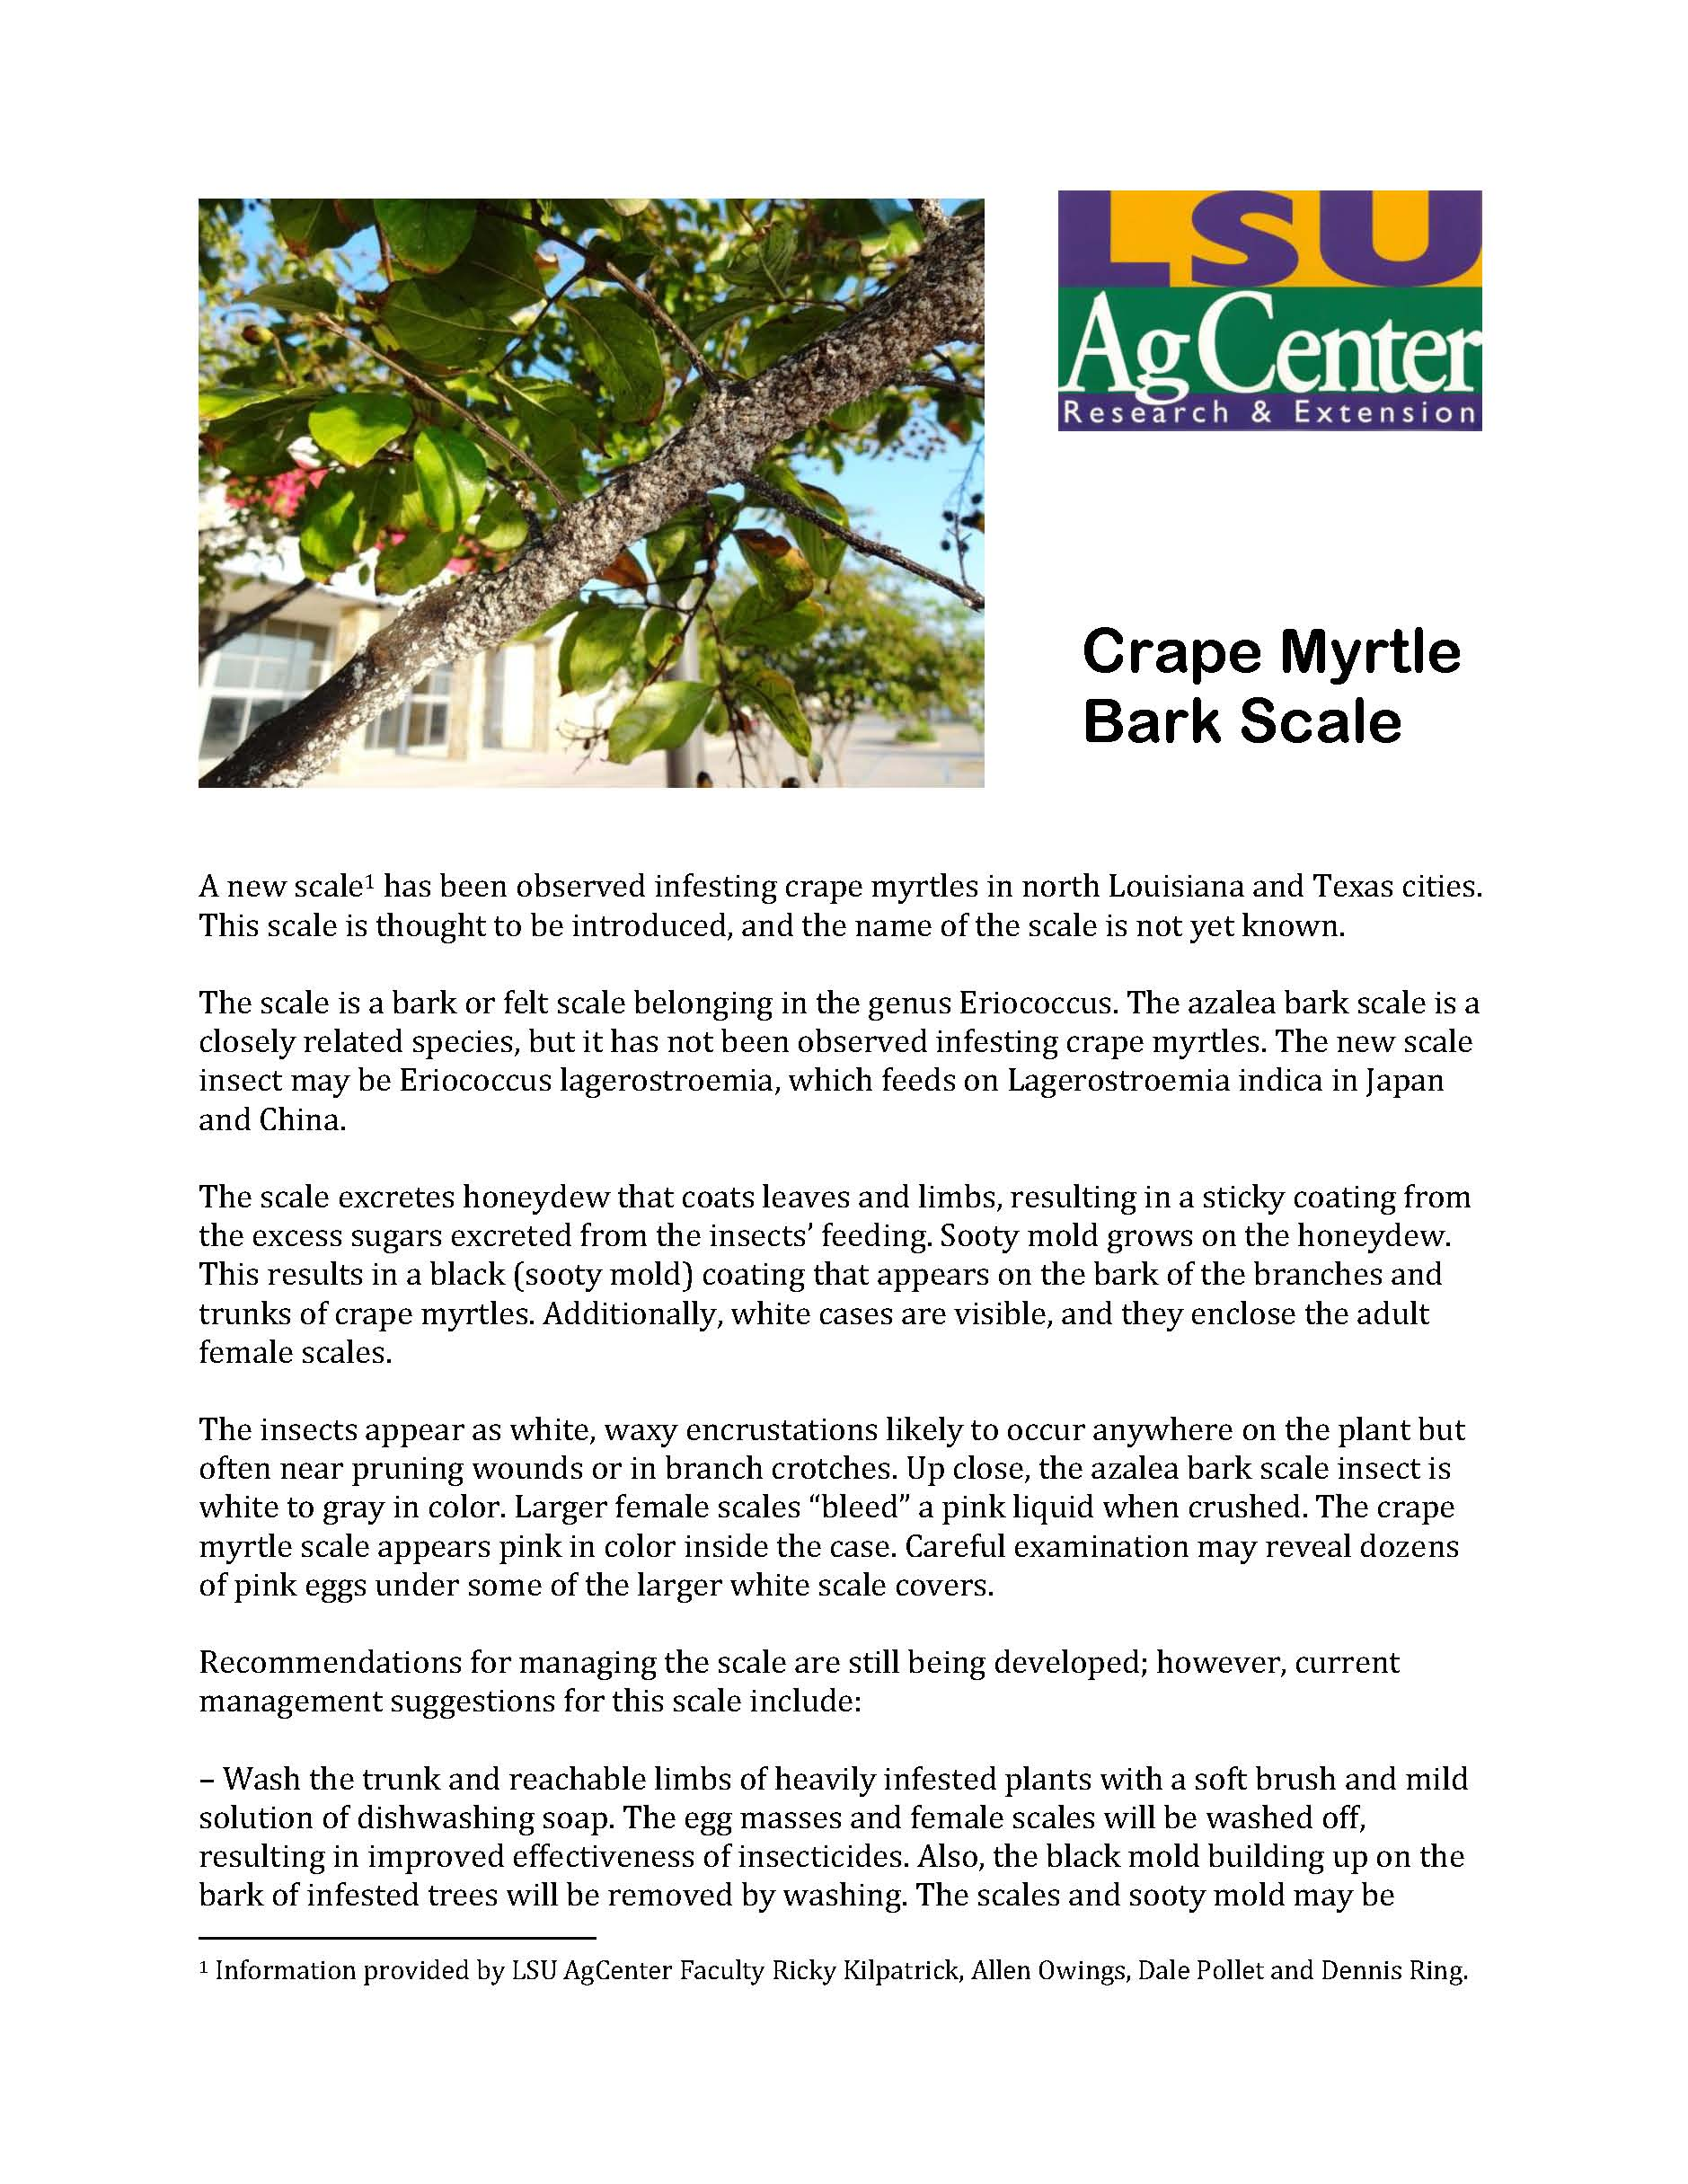 Crape Myrtle Bark Scale Fact Sheet